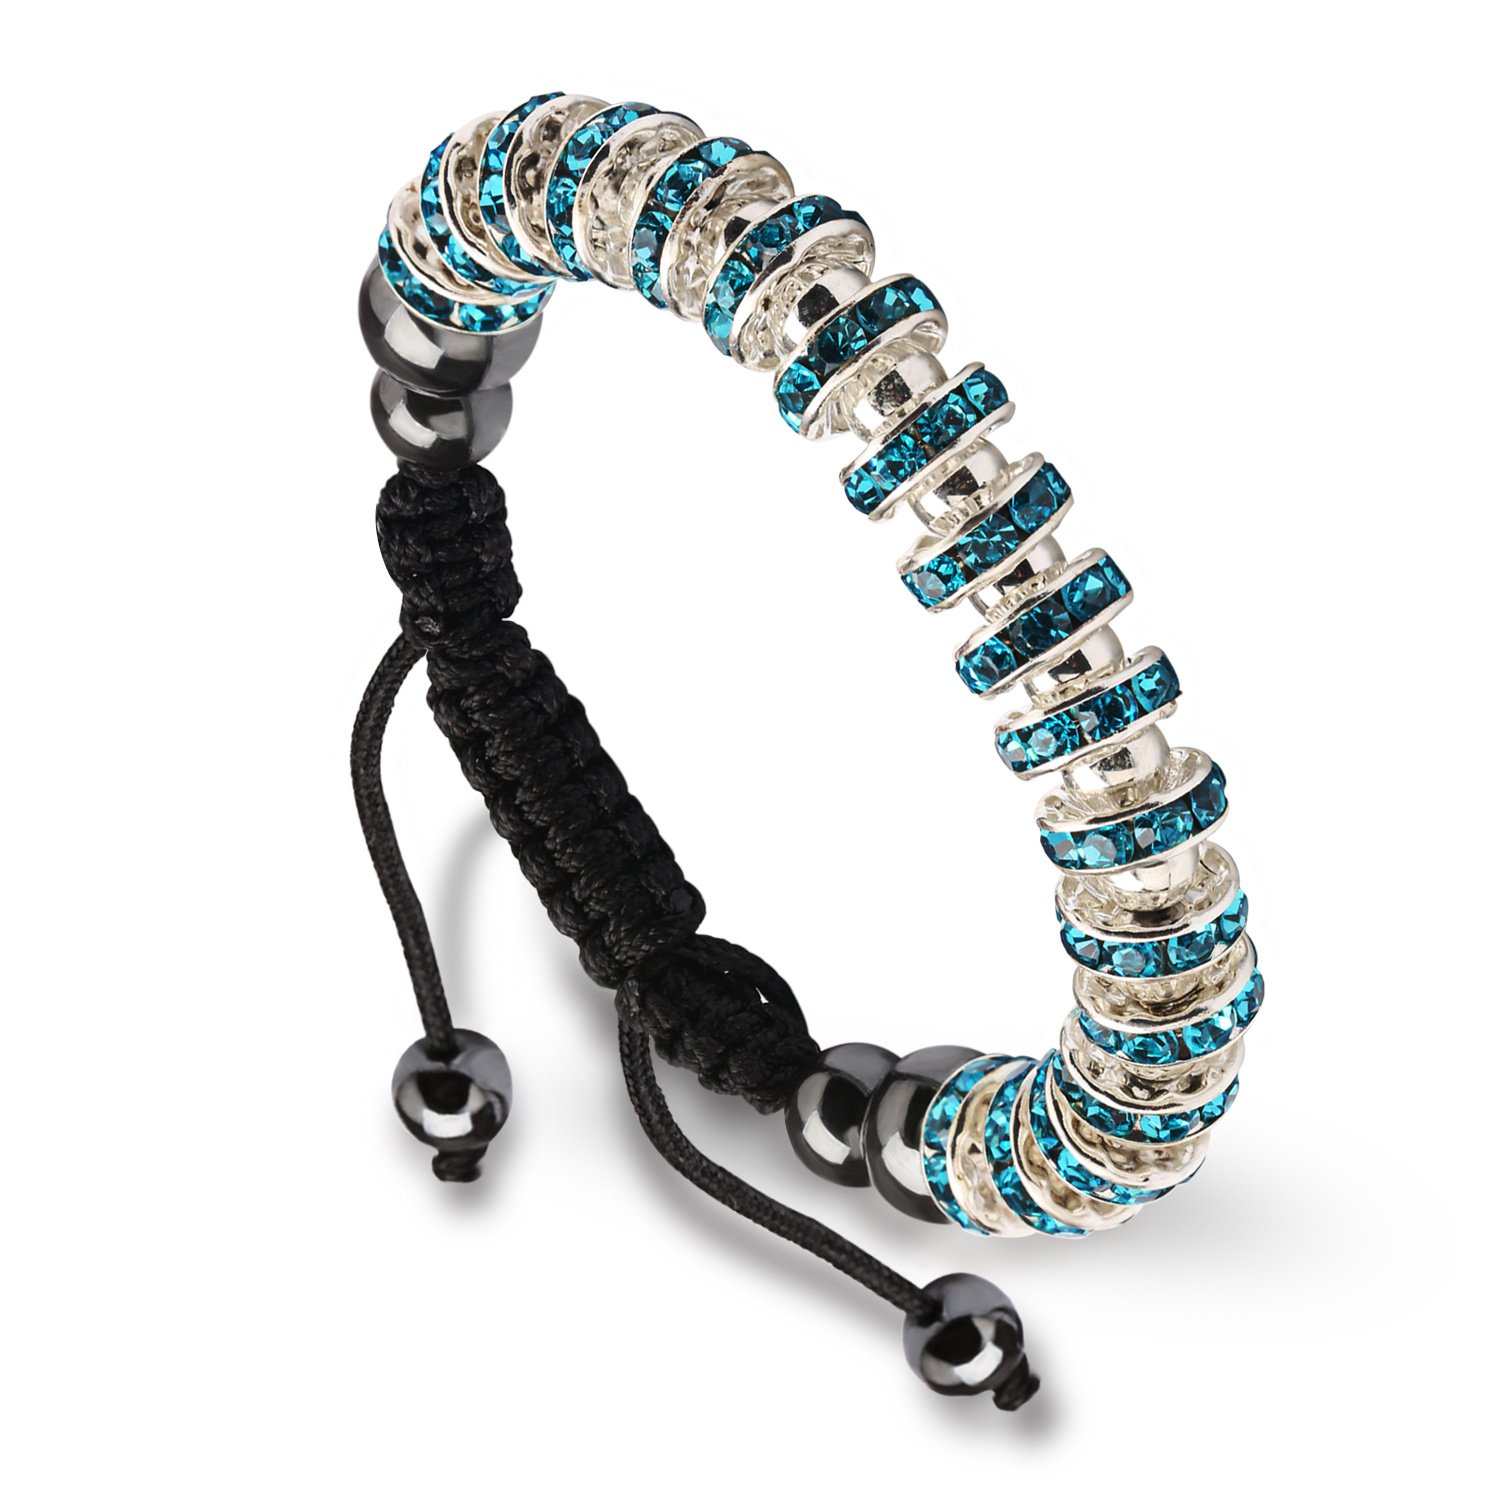 Zircon Stoppers Macrame Bracelet,UHIBROS Multicolor Crystal Unisex Adjustable Fashion Braid Bracelet Lake Blue Stoppers Beads Braiding Bangle